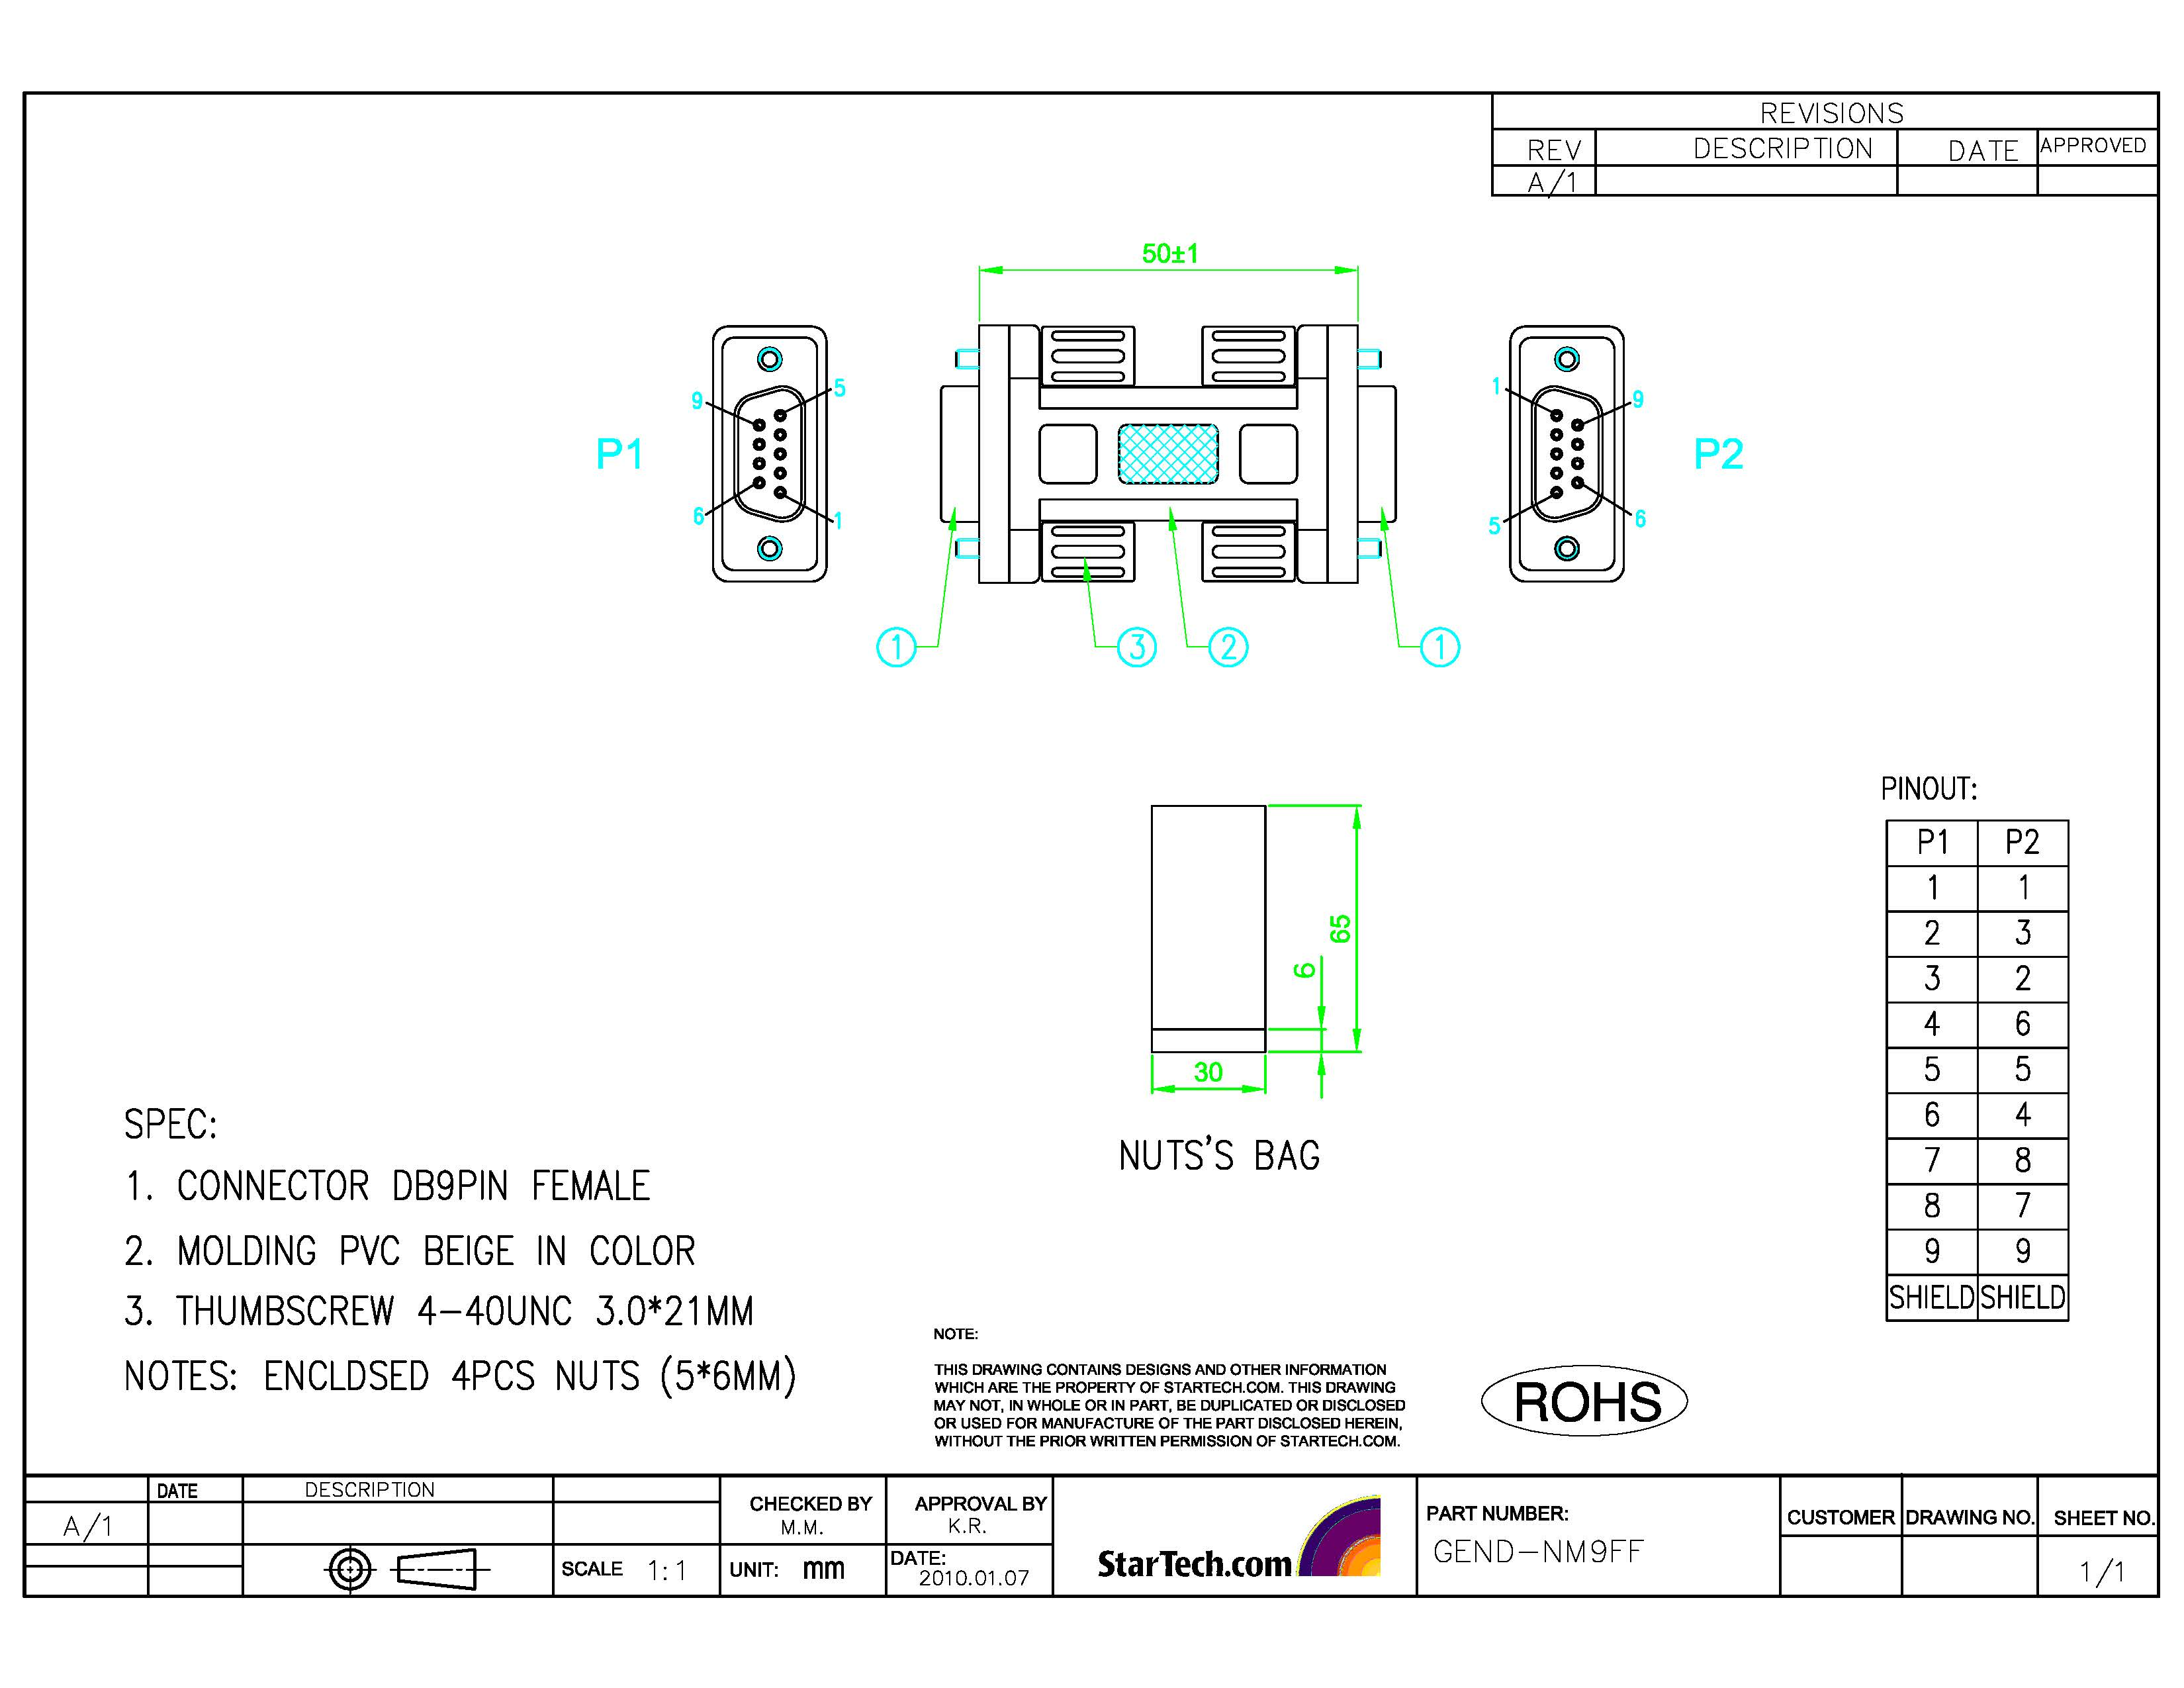 Rs232 Pin Diagram Pdf Schematics Wiring Diagrams Null Modem Adapter 2x Db9 Female Startech Com